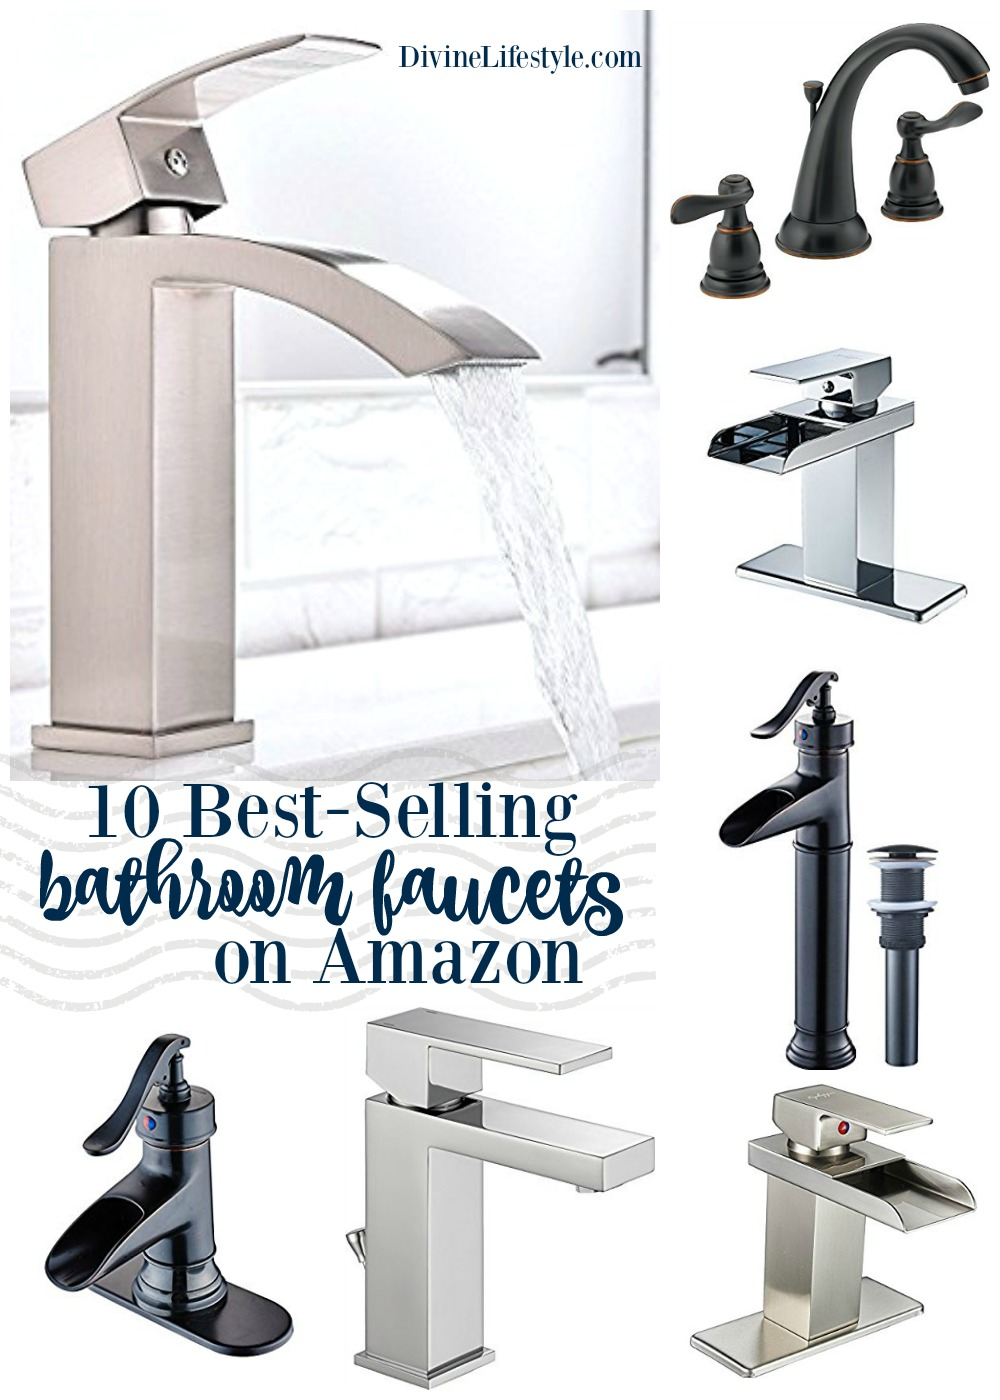 10 best selling bathroom faucets on amazon divine lifestyle. Black Bedroom Furniture Sets. Home Design Ideas